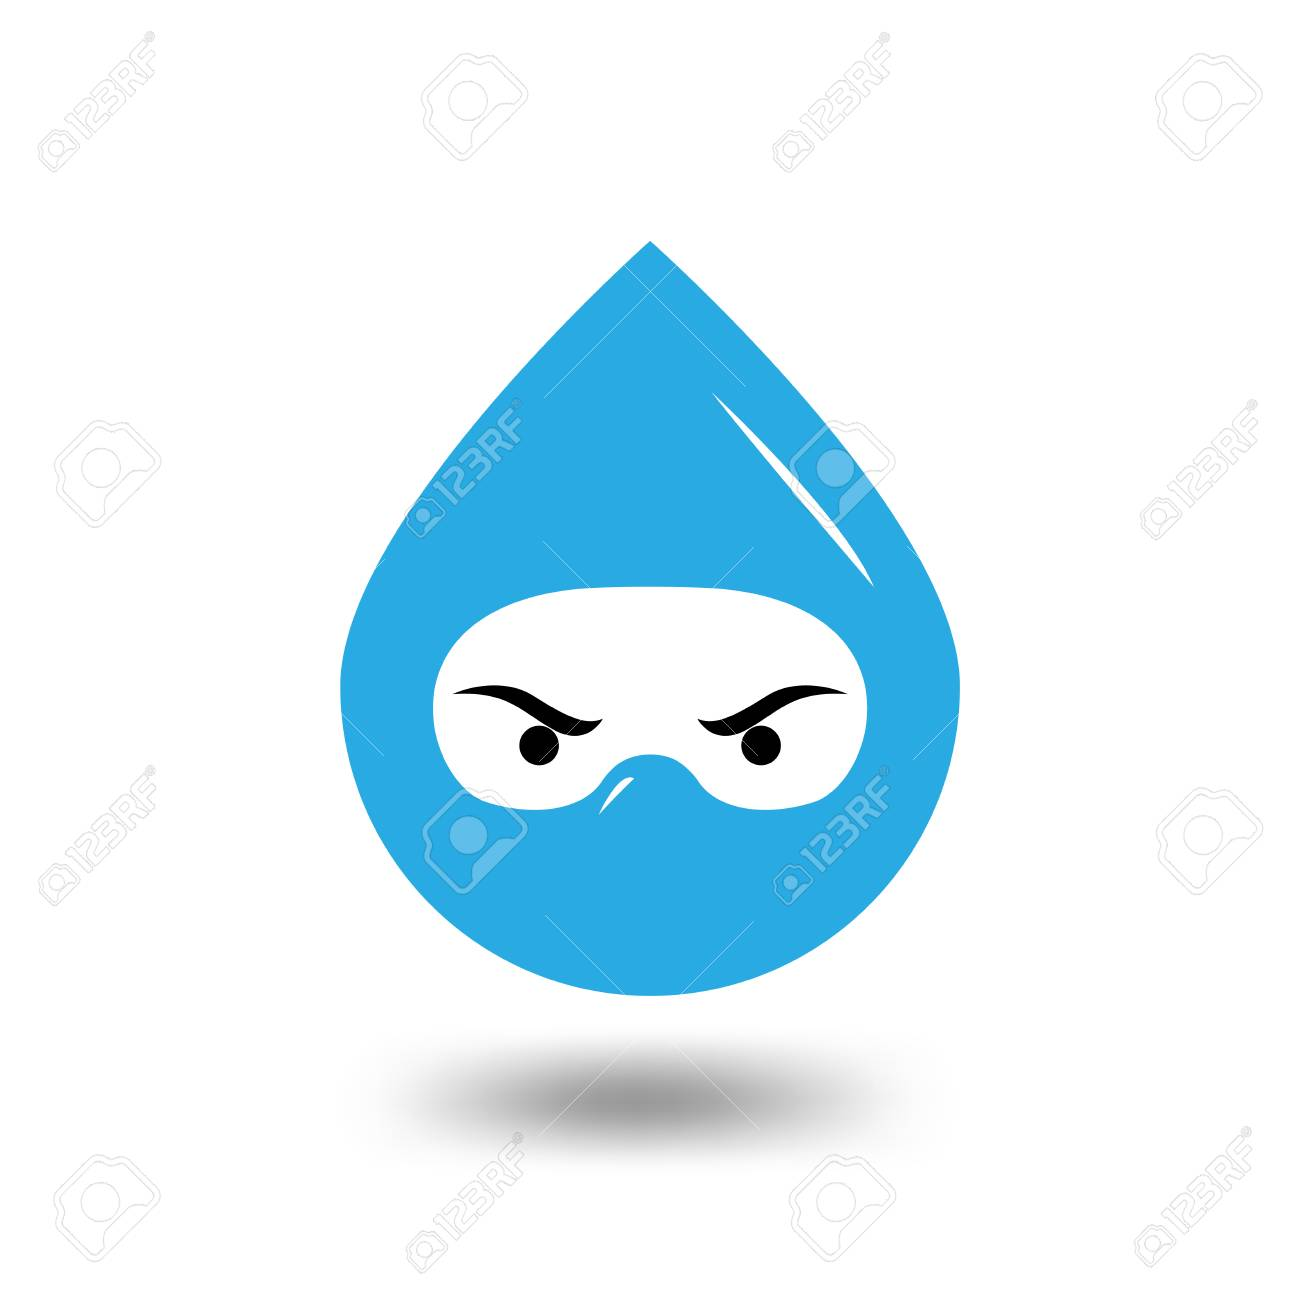 water droplet head ninja logo template water and ninja logo